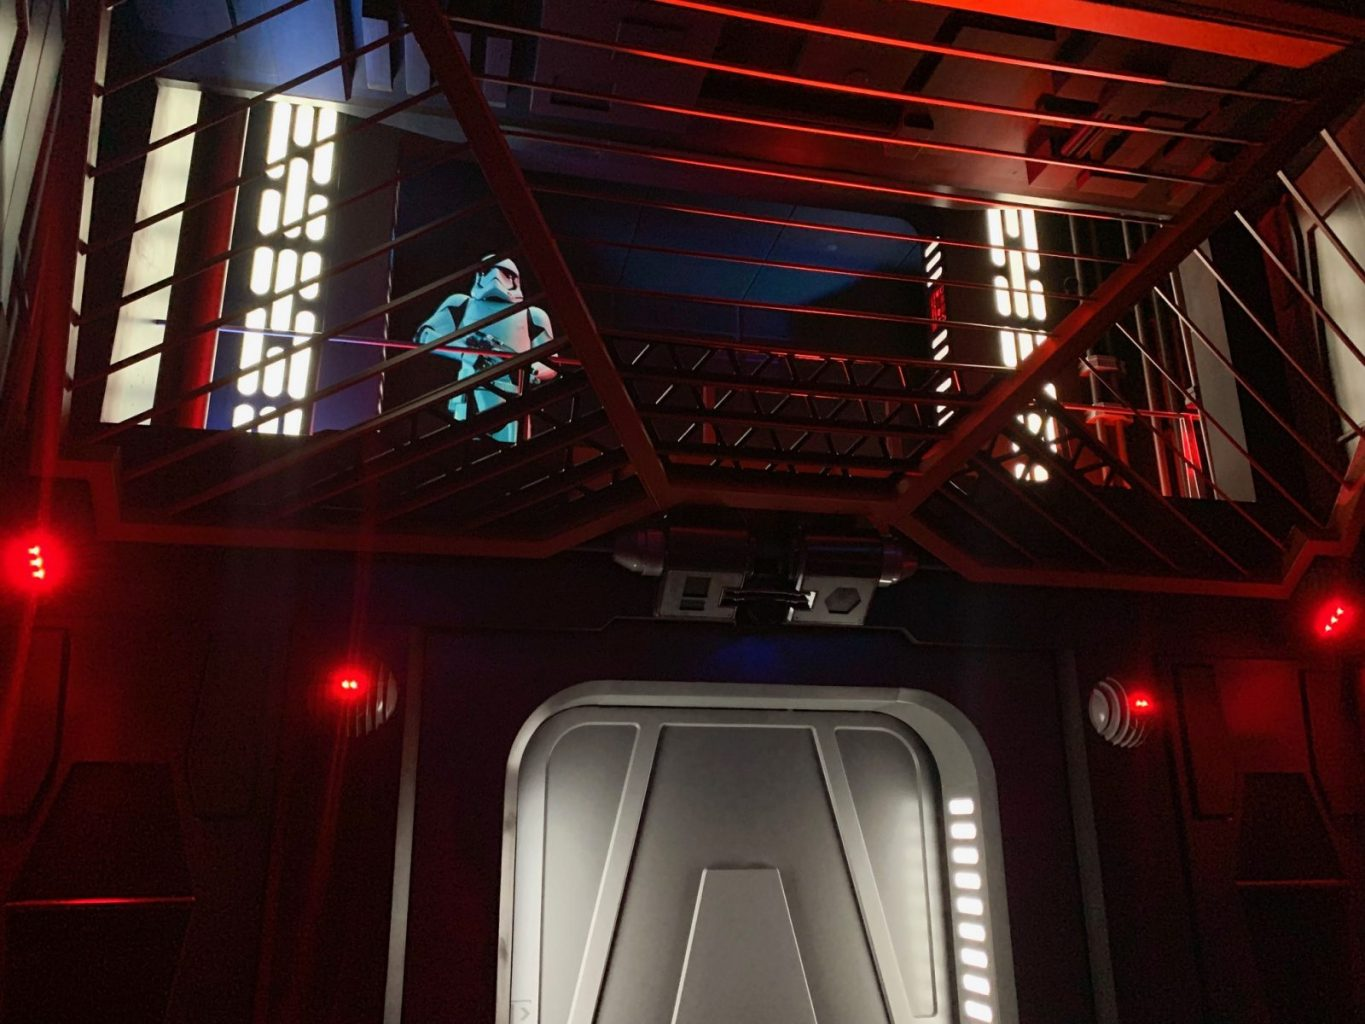 The interrogation room at Rise Of The Resistance